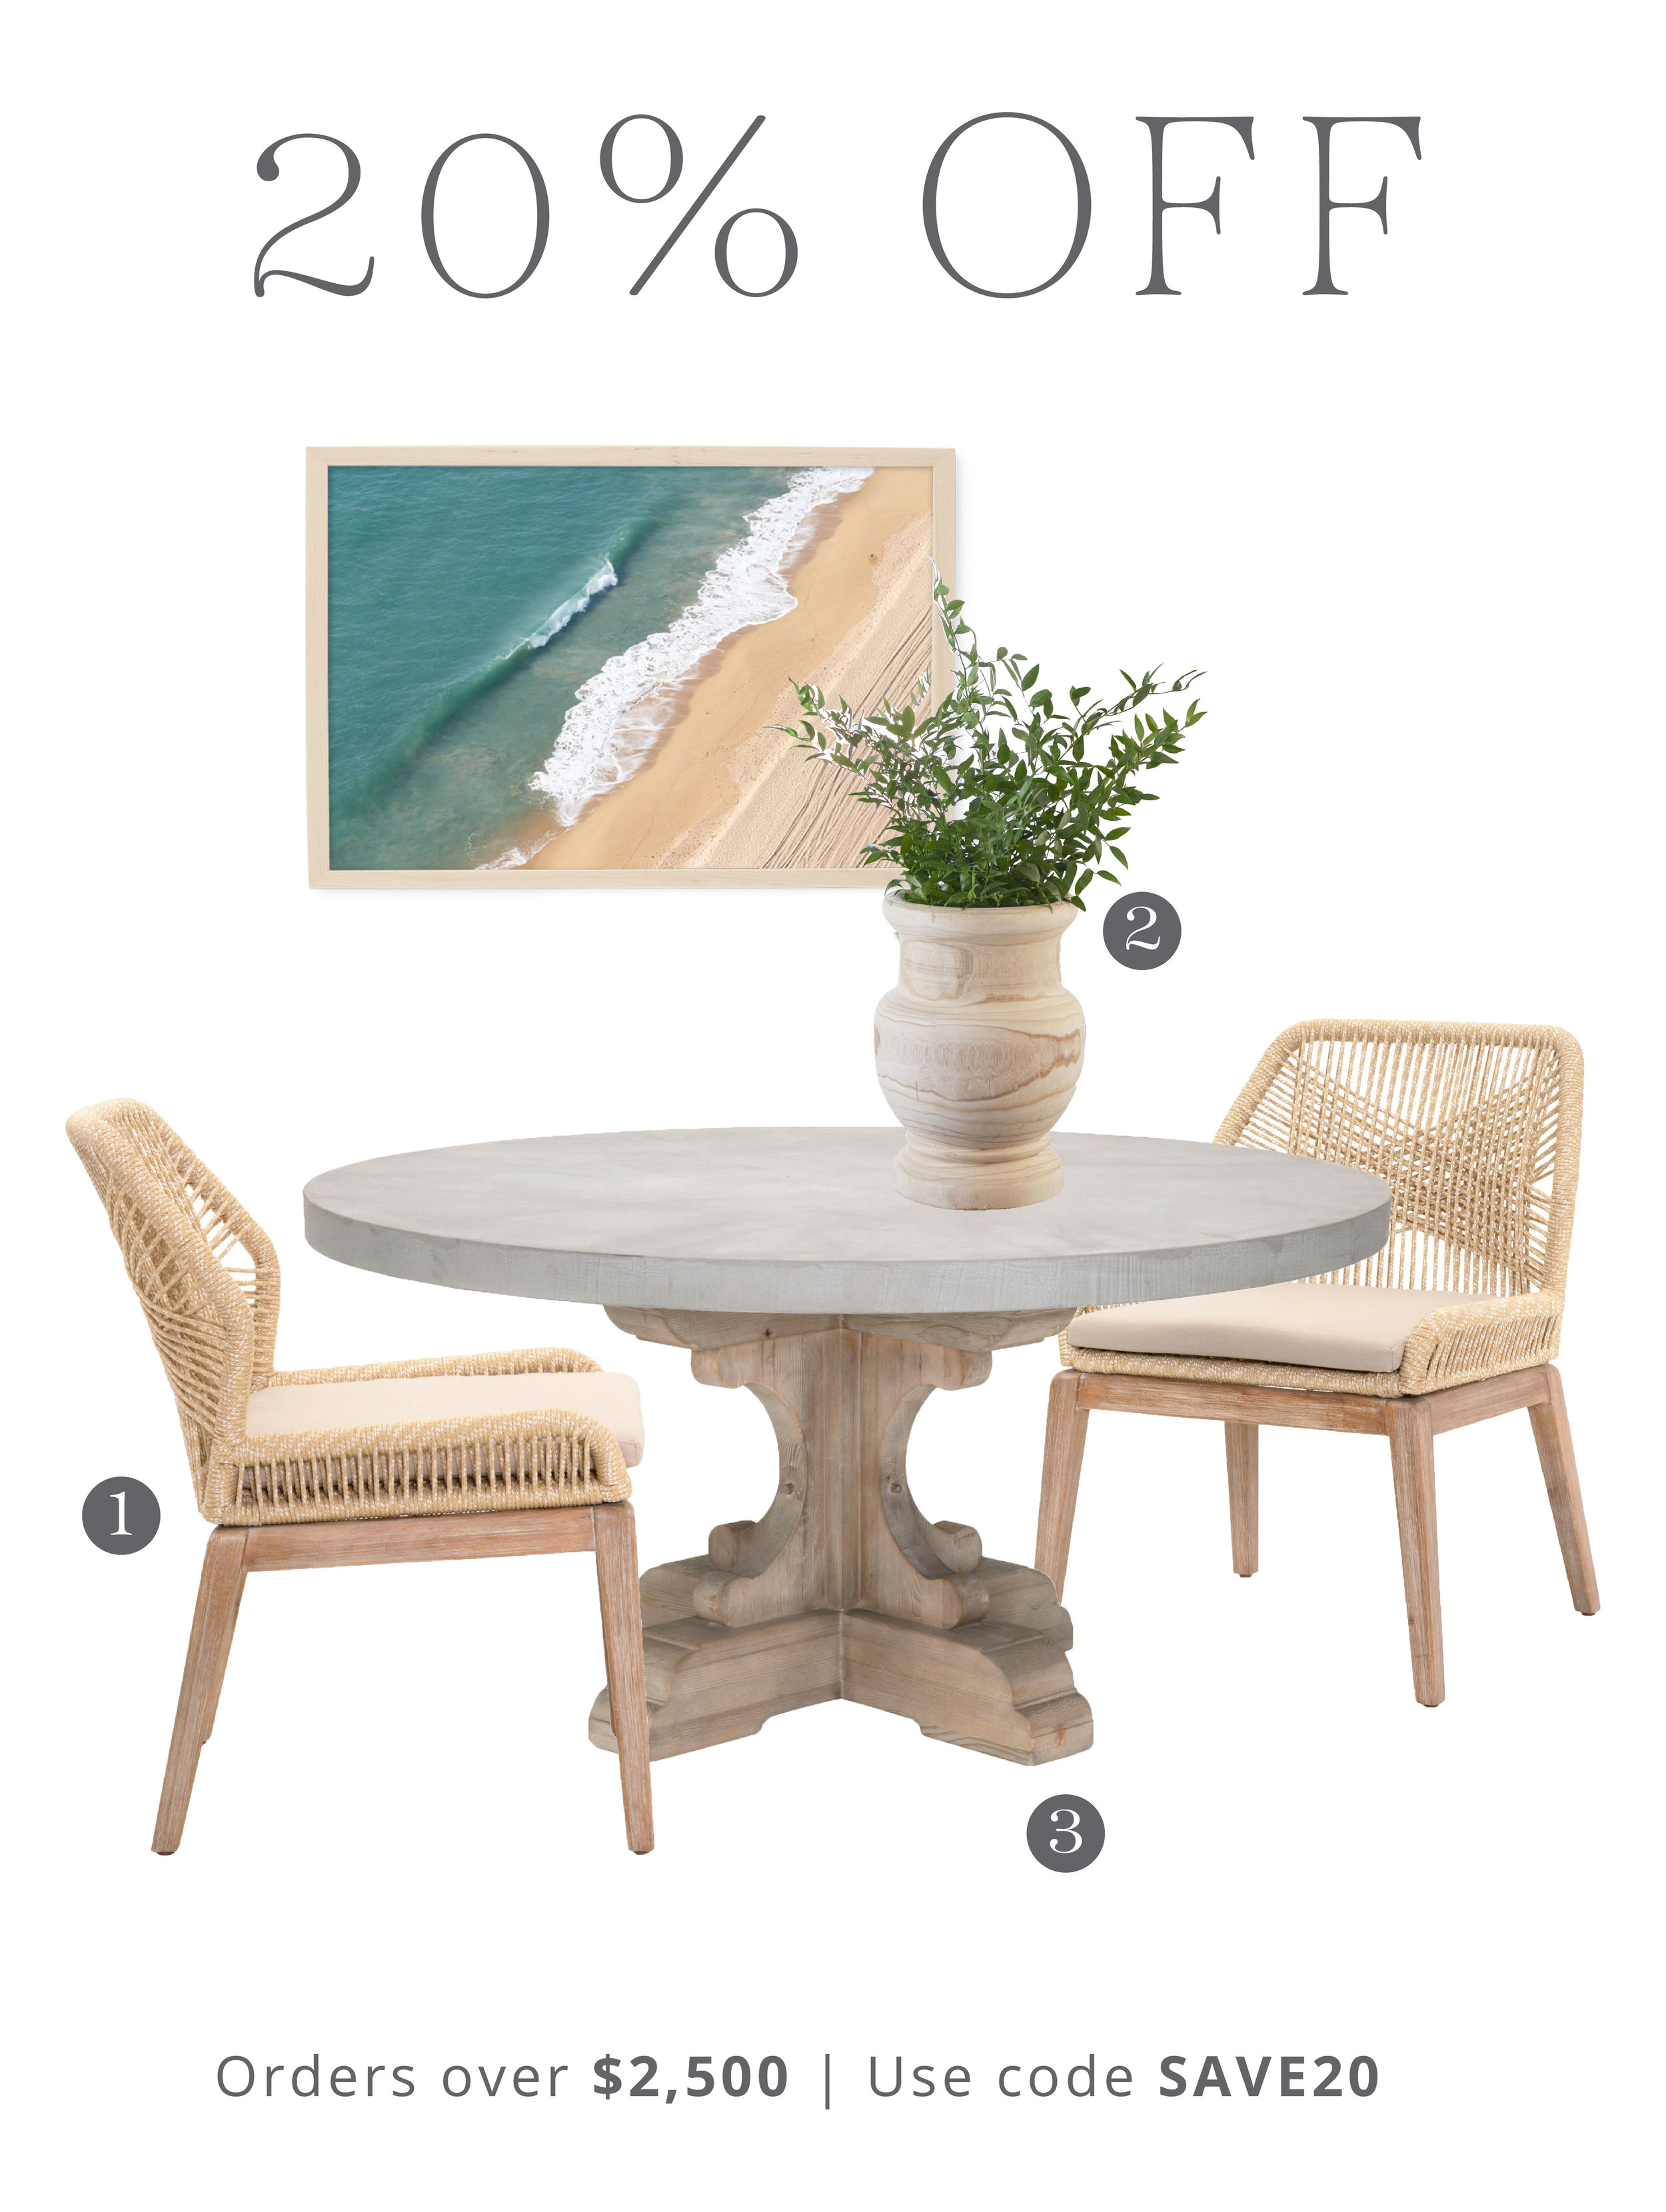 1.  Loom Dining Chair | 2.  Laguna Wooden Vase  | 3.  Bastille Dining Table